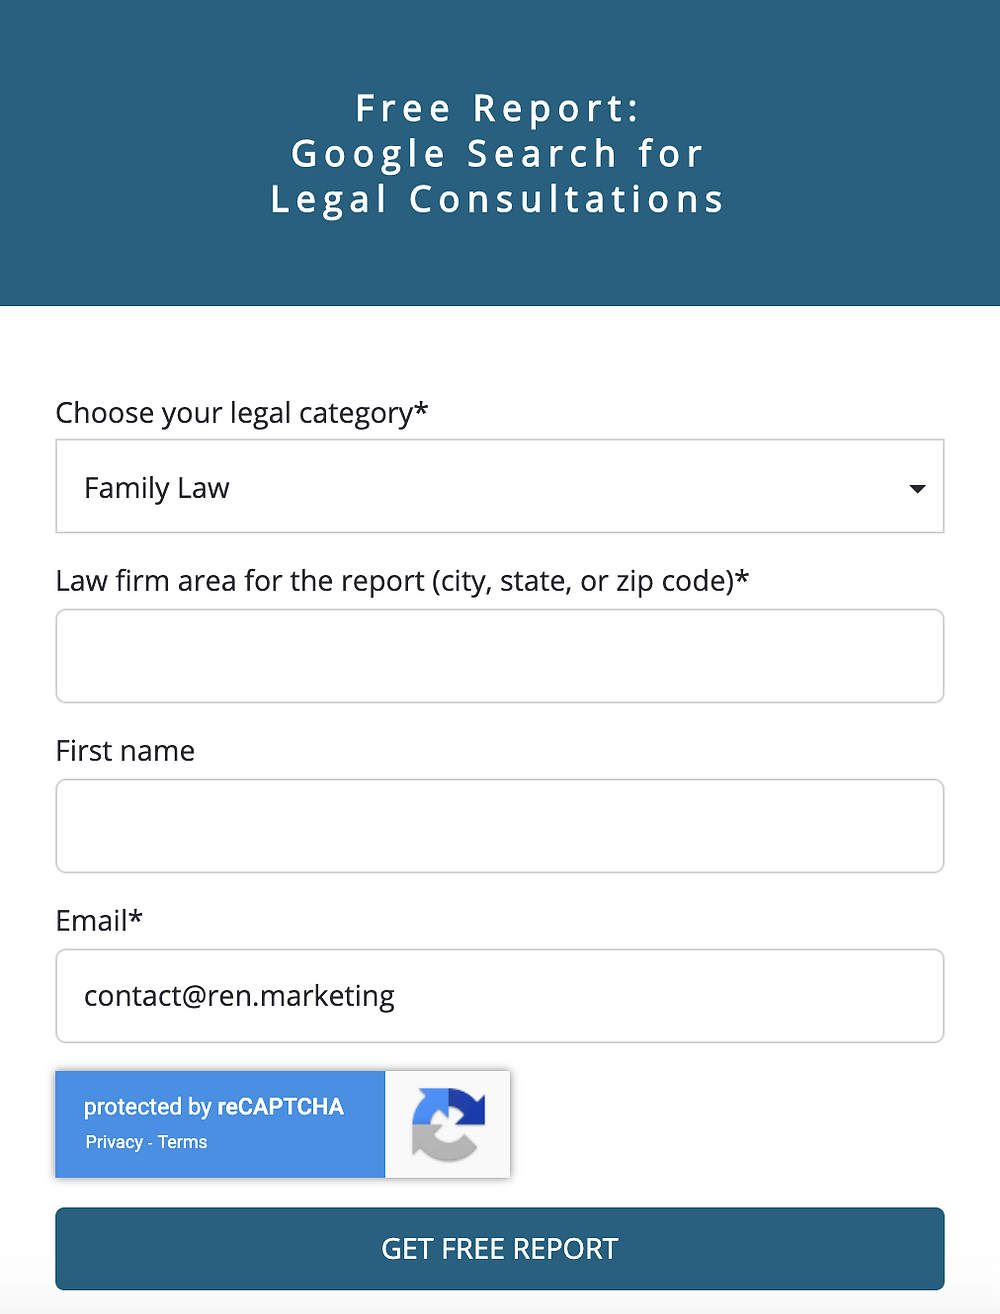 Lead generation sign up form